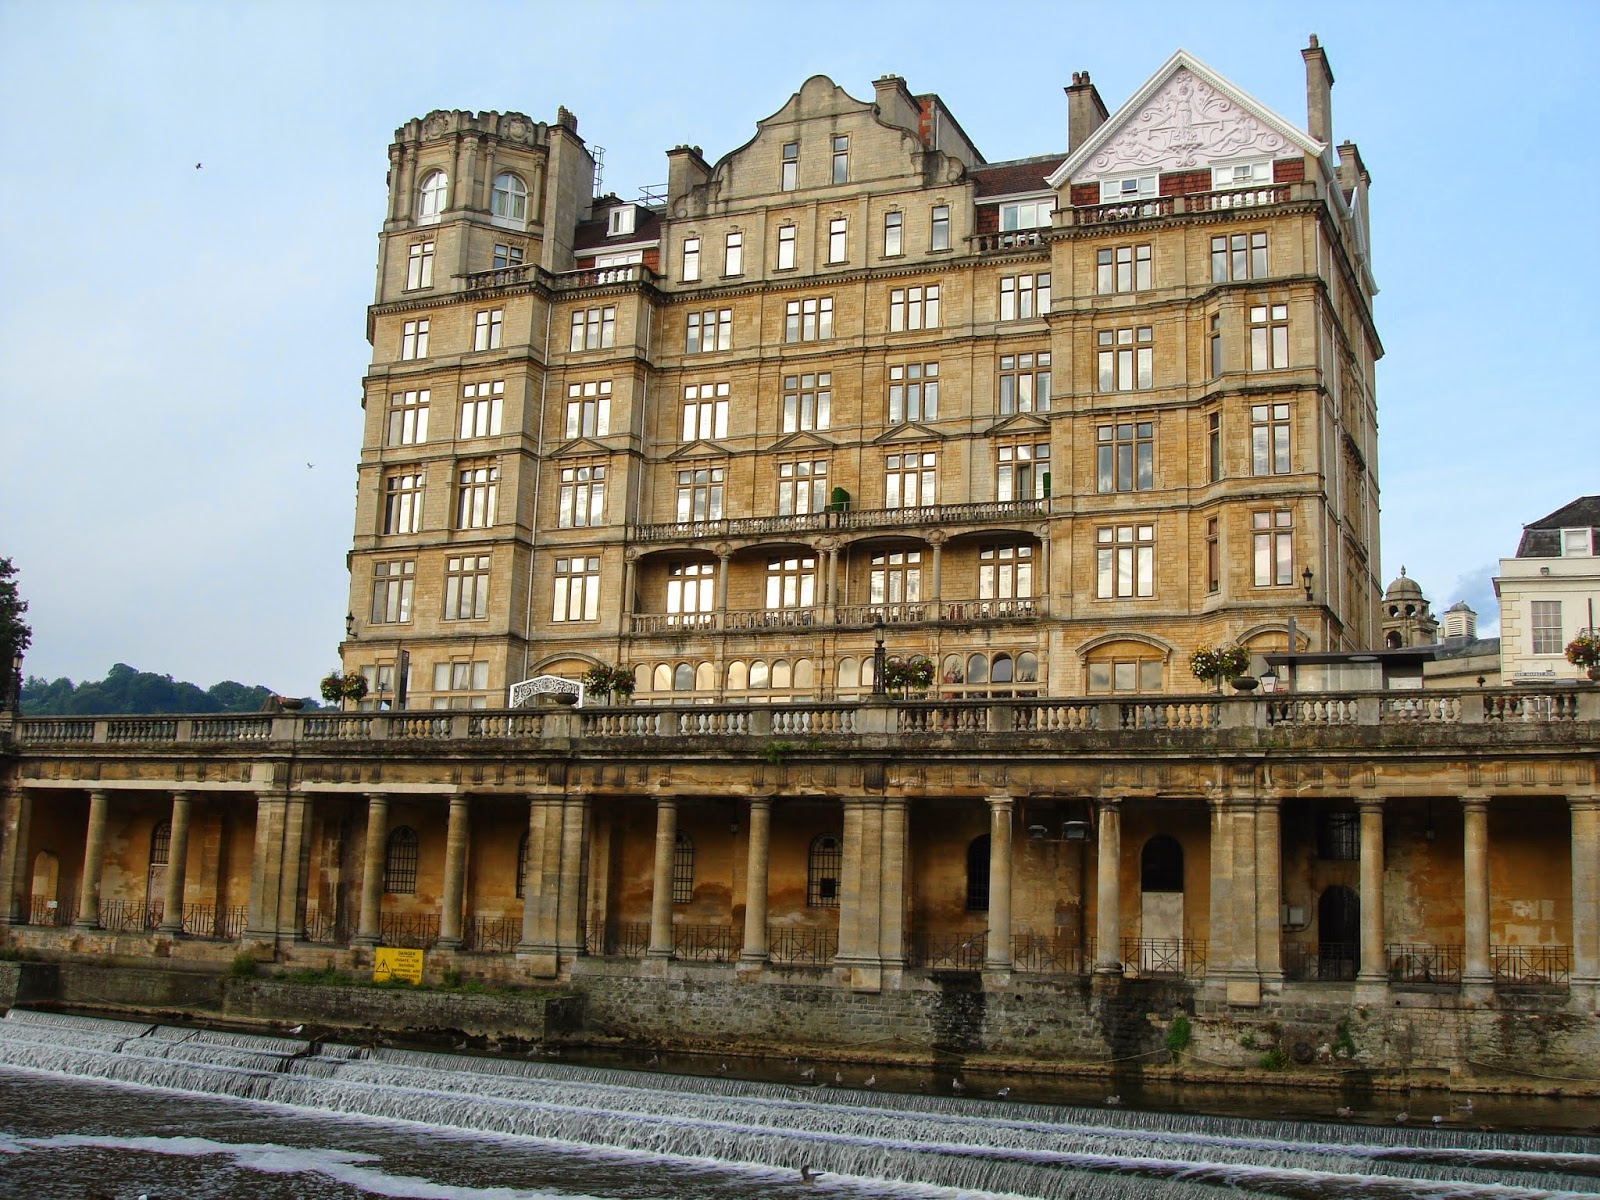 Empire Hotel, Pulteney weir, Bath, England